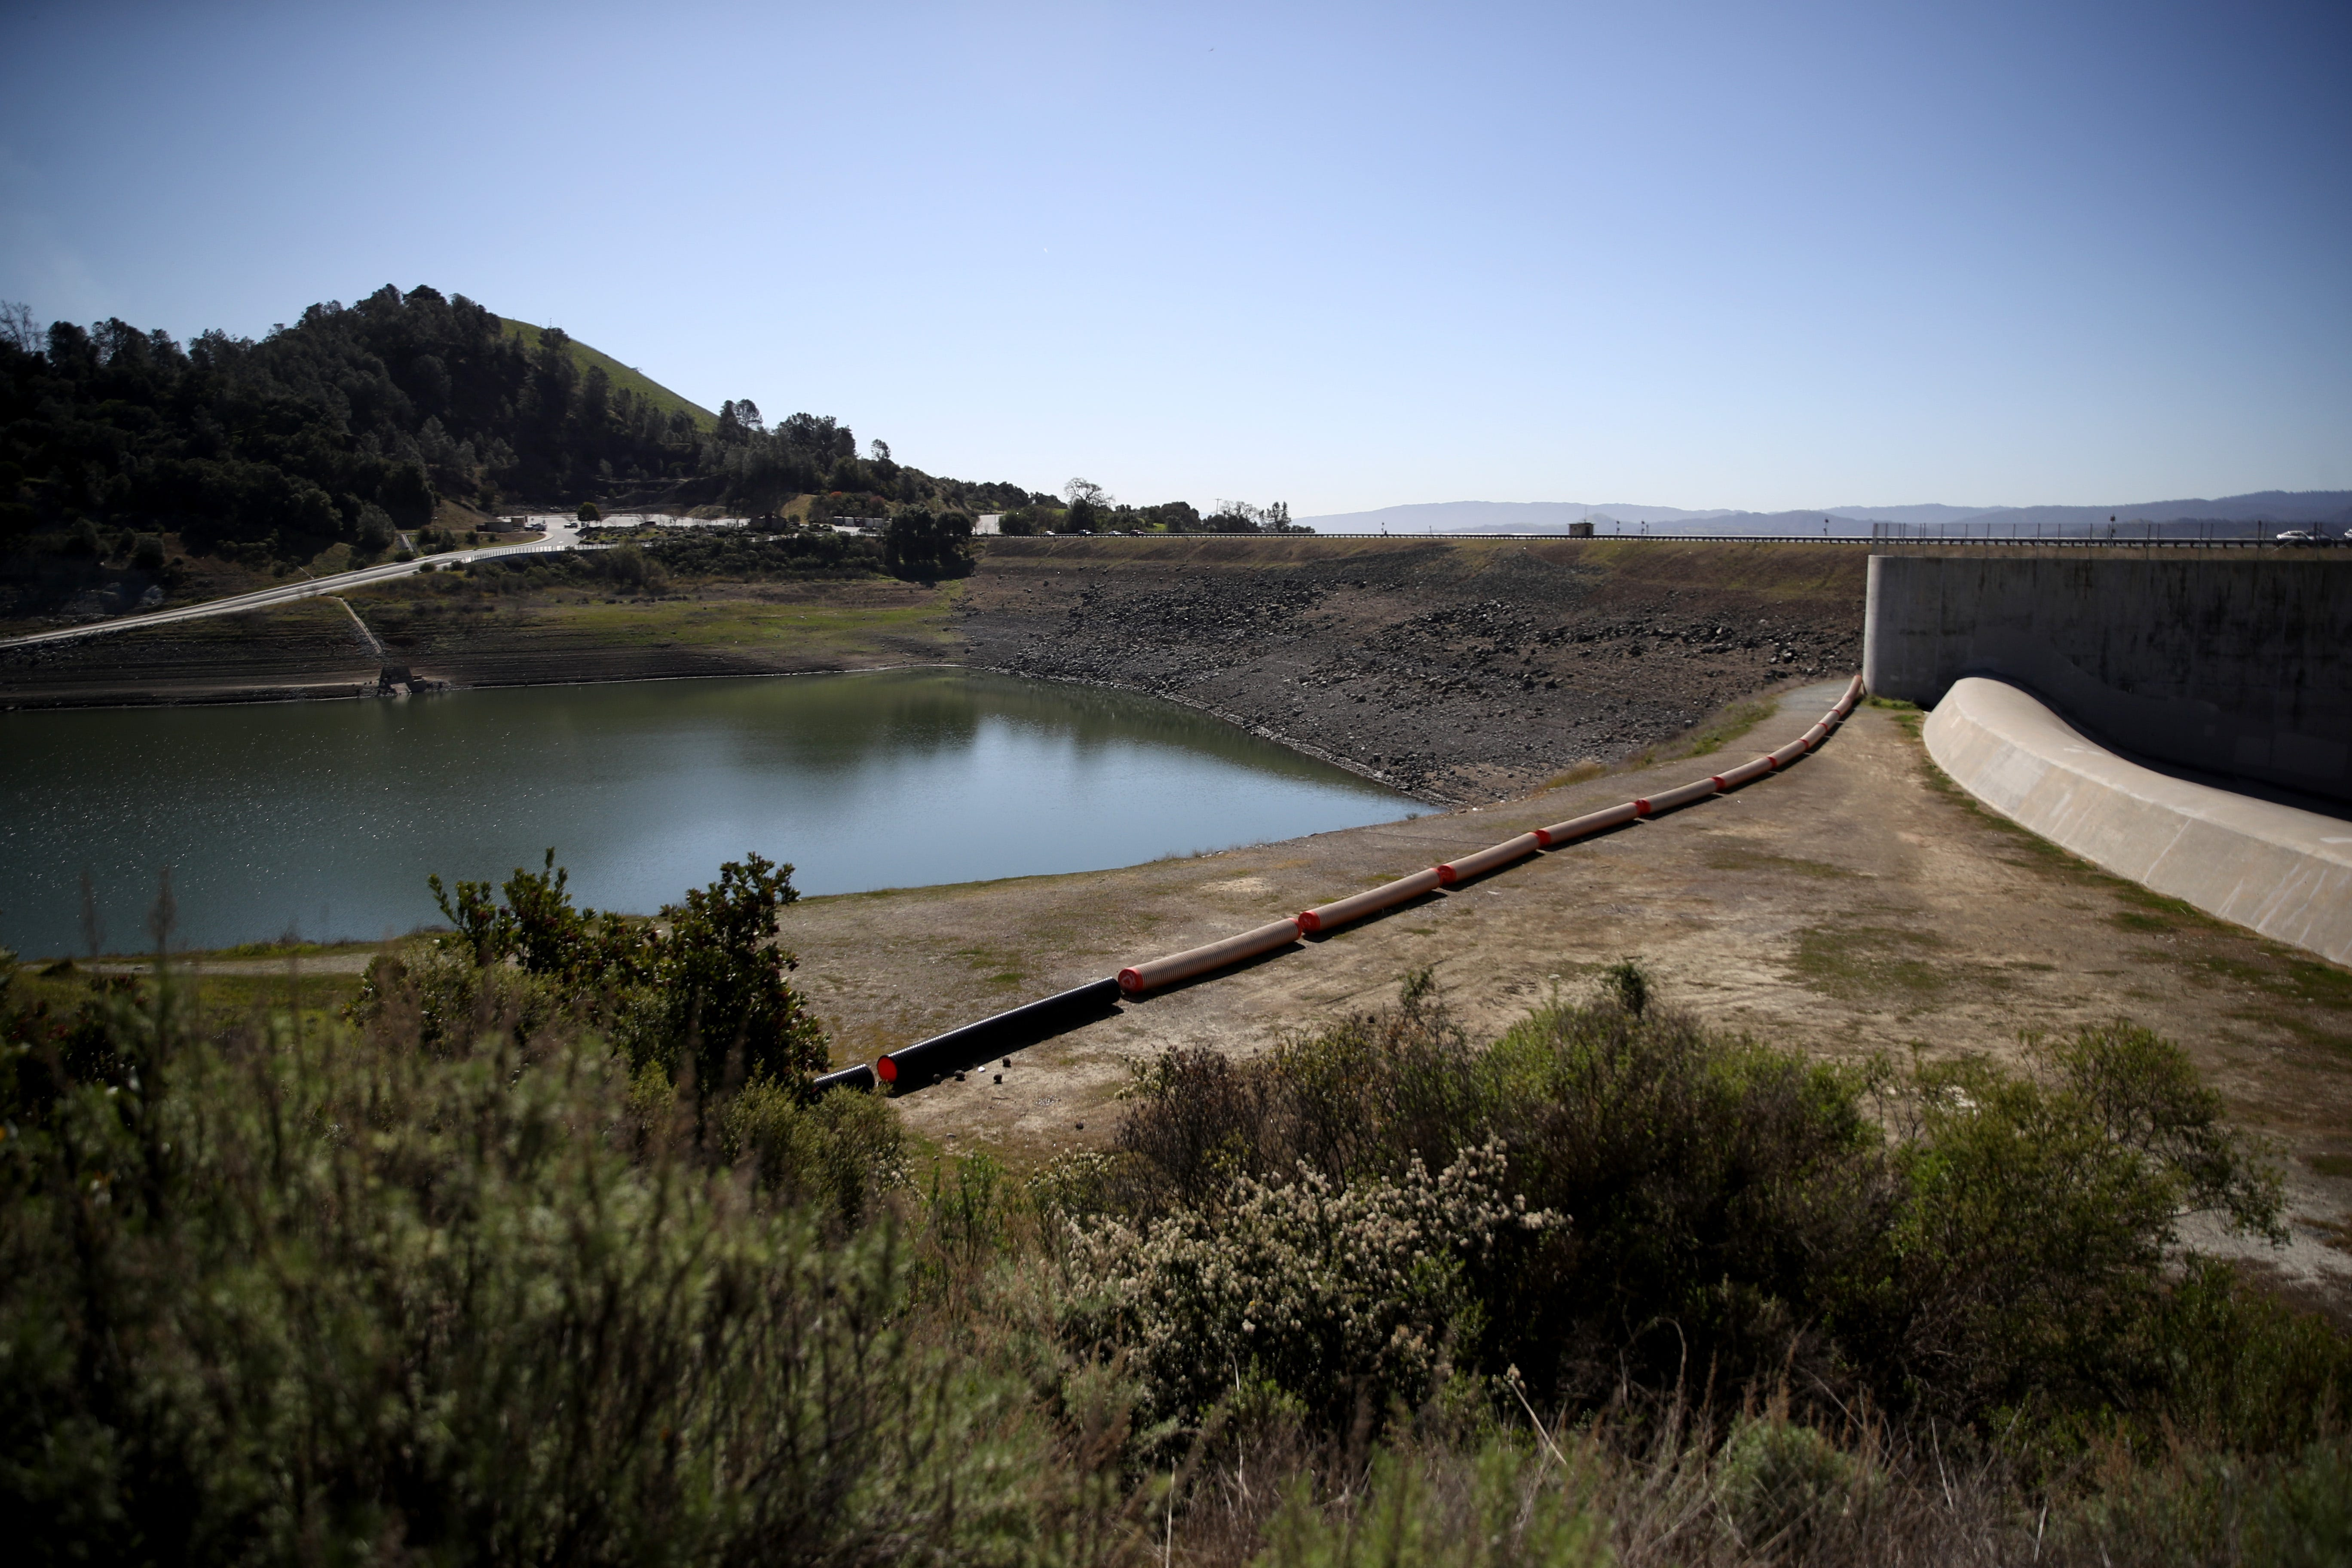 With California nearing drought, reservoir near San Jose ordered to be drained. Here s why